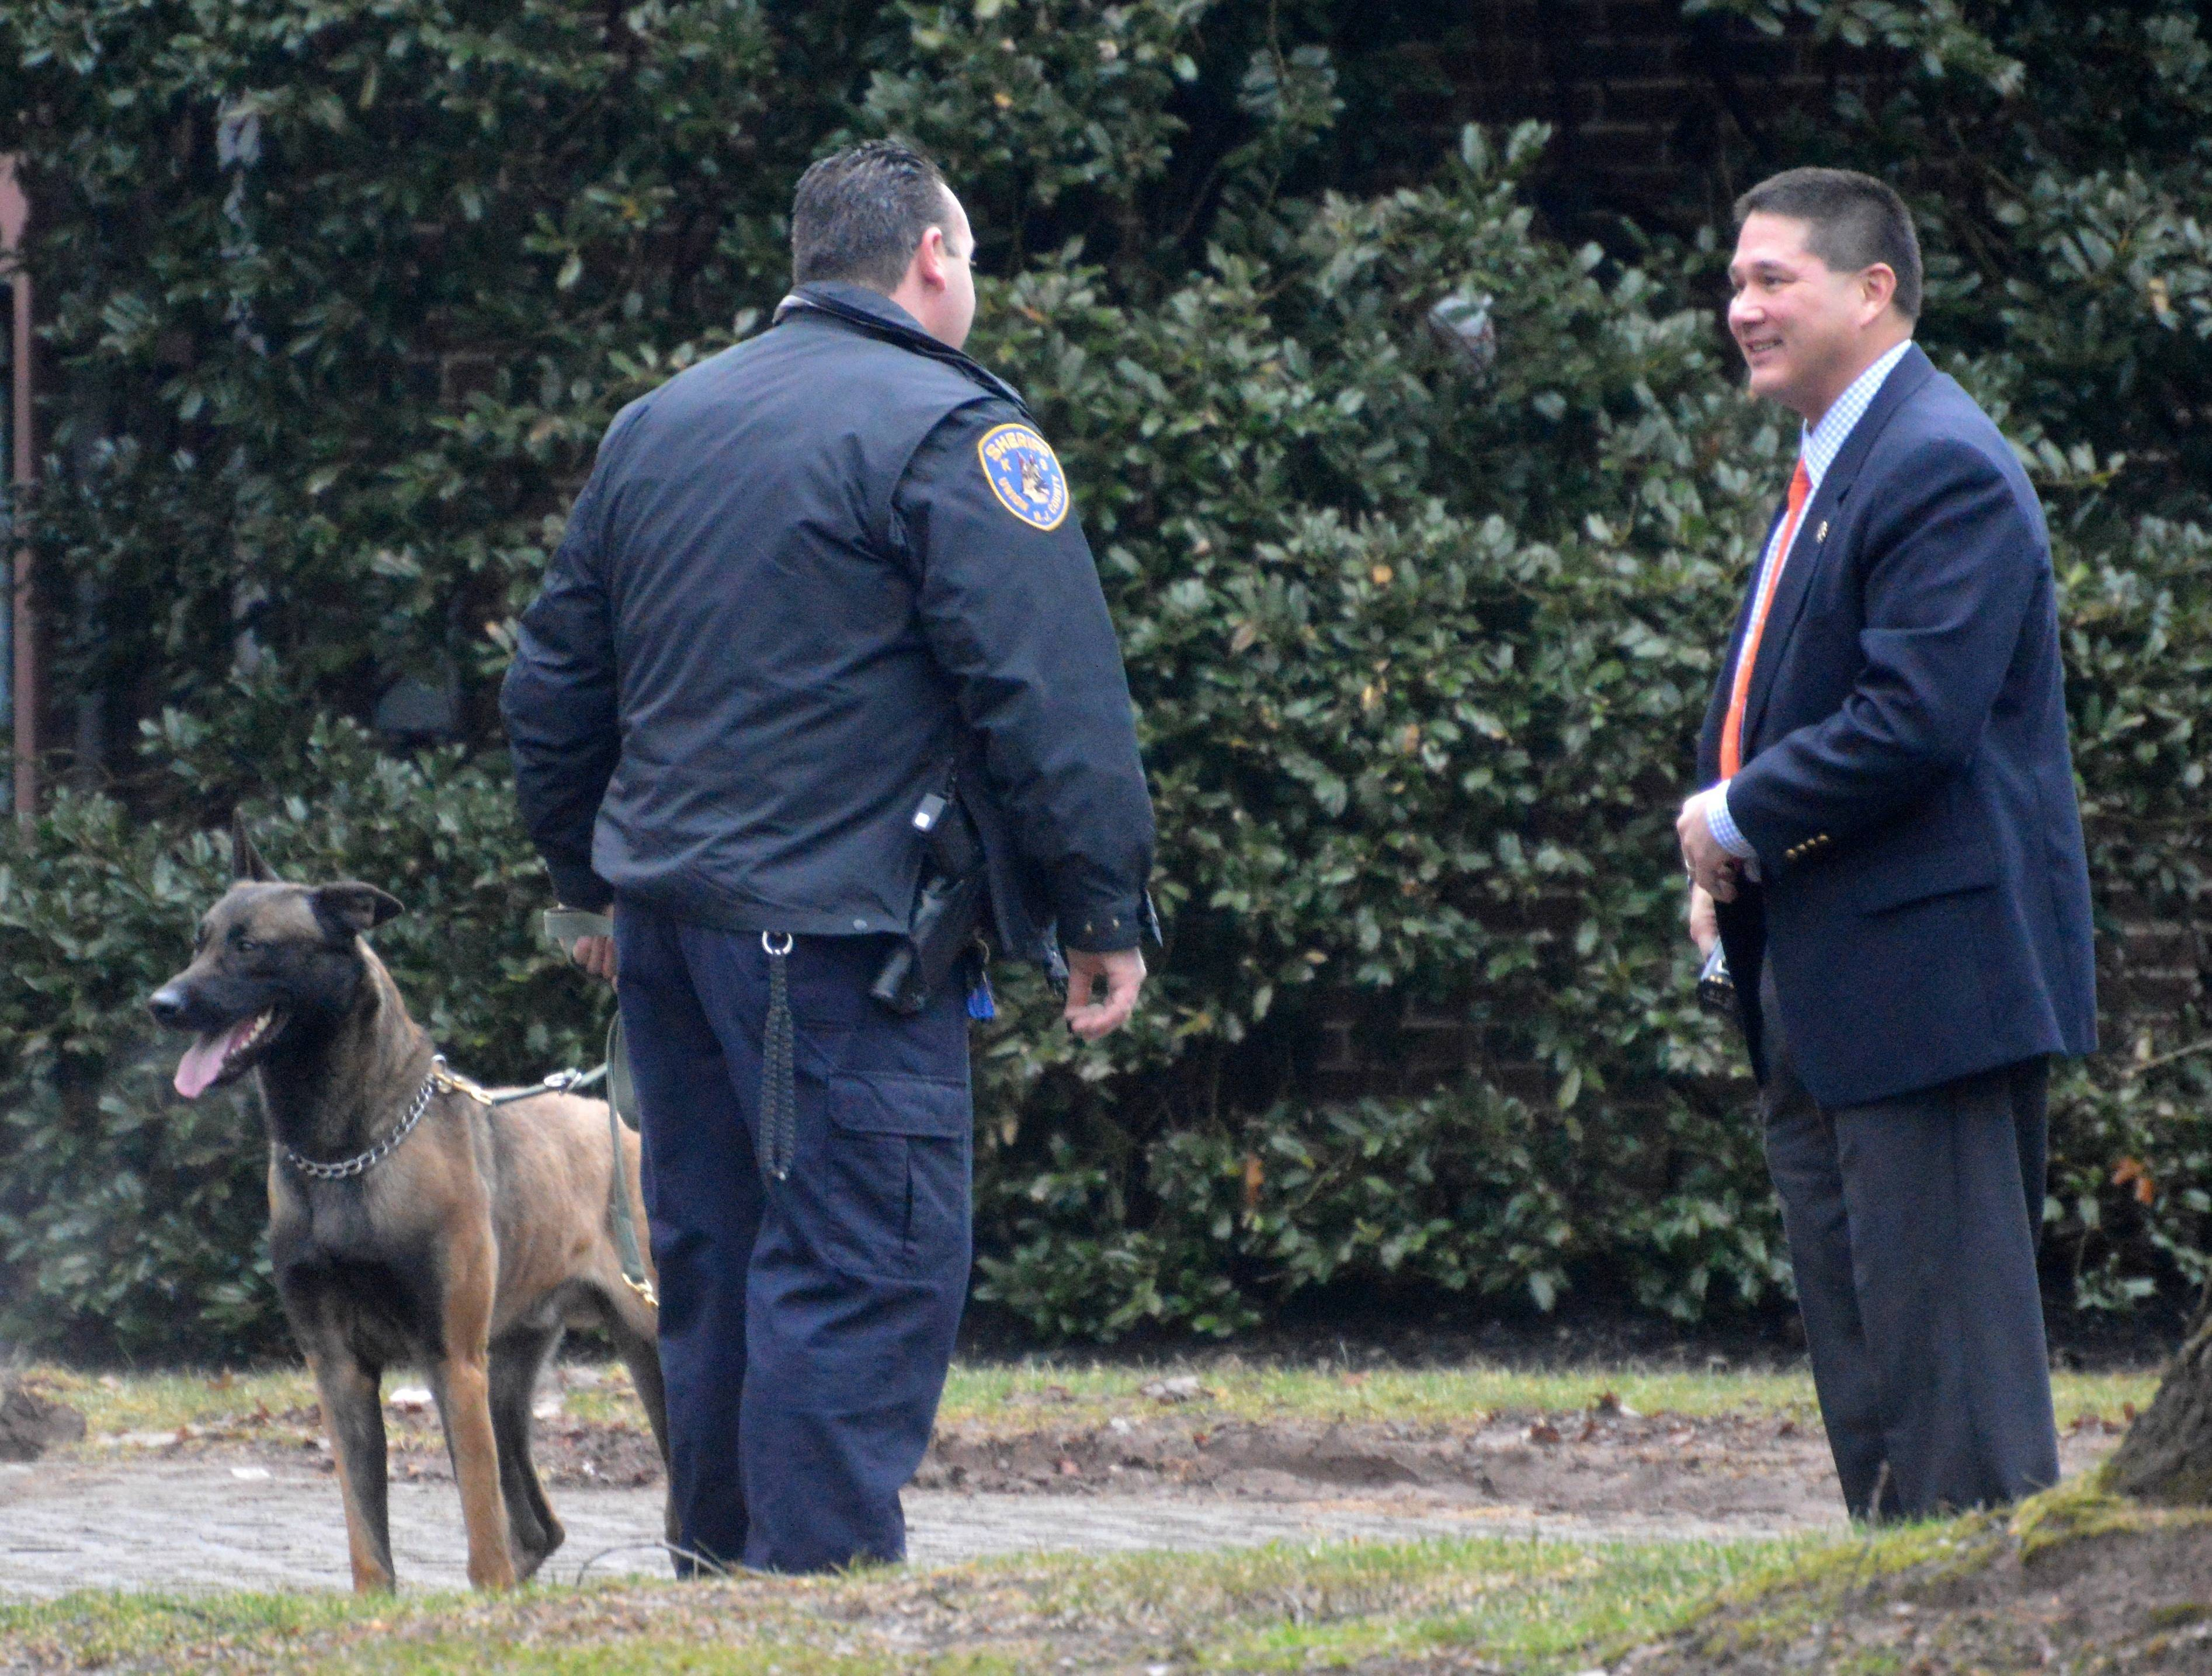 32c5e2885782fc335989_Chief_Conley_Ted_Conley_speaks_with_Anthony_Gialanella_of_Union_Co._K-9_Squad._No_bomb_found..JPG